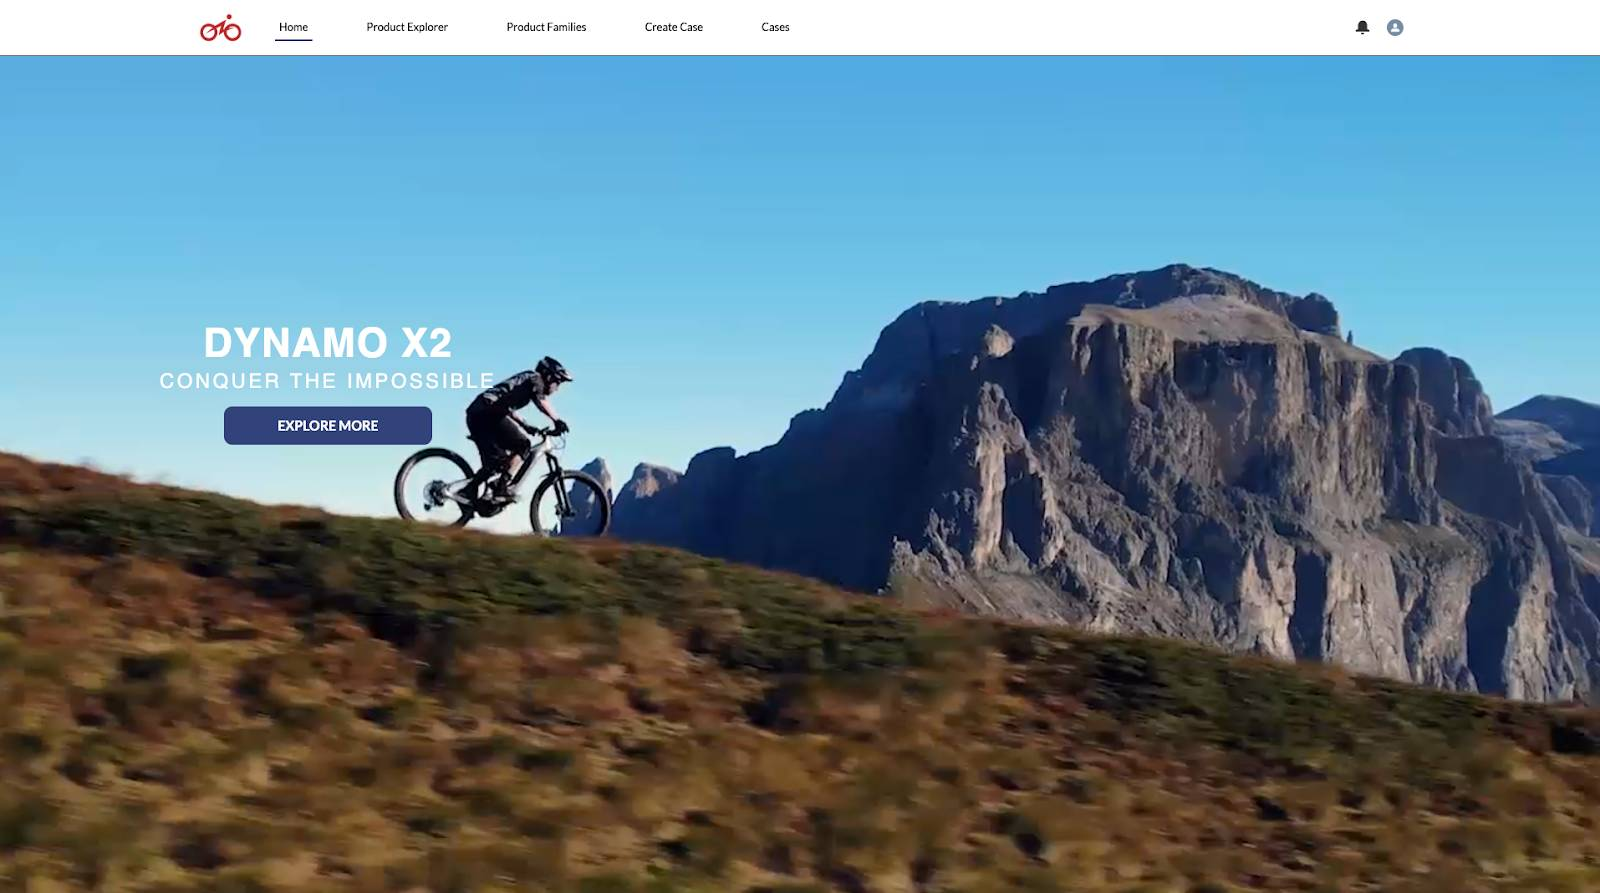 E-Bikes Community home page showing a man riding a bike through the mountainside. There's an Explore More call-to-action button under the brand tagline.